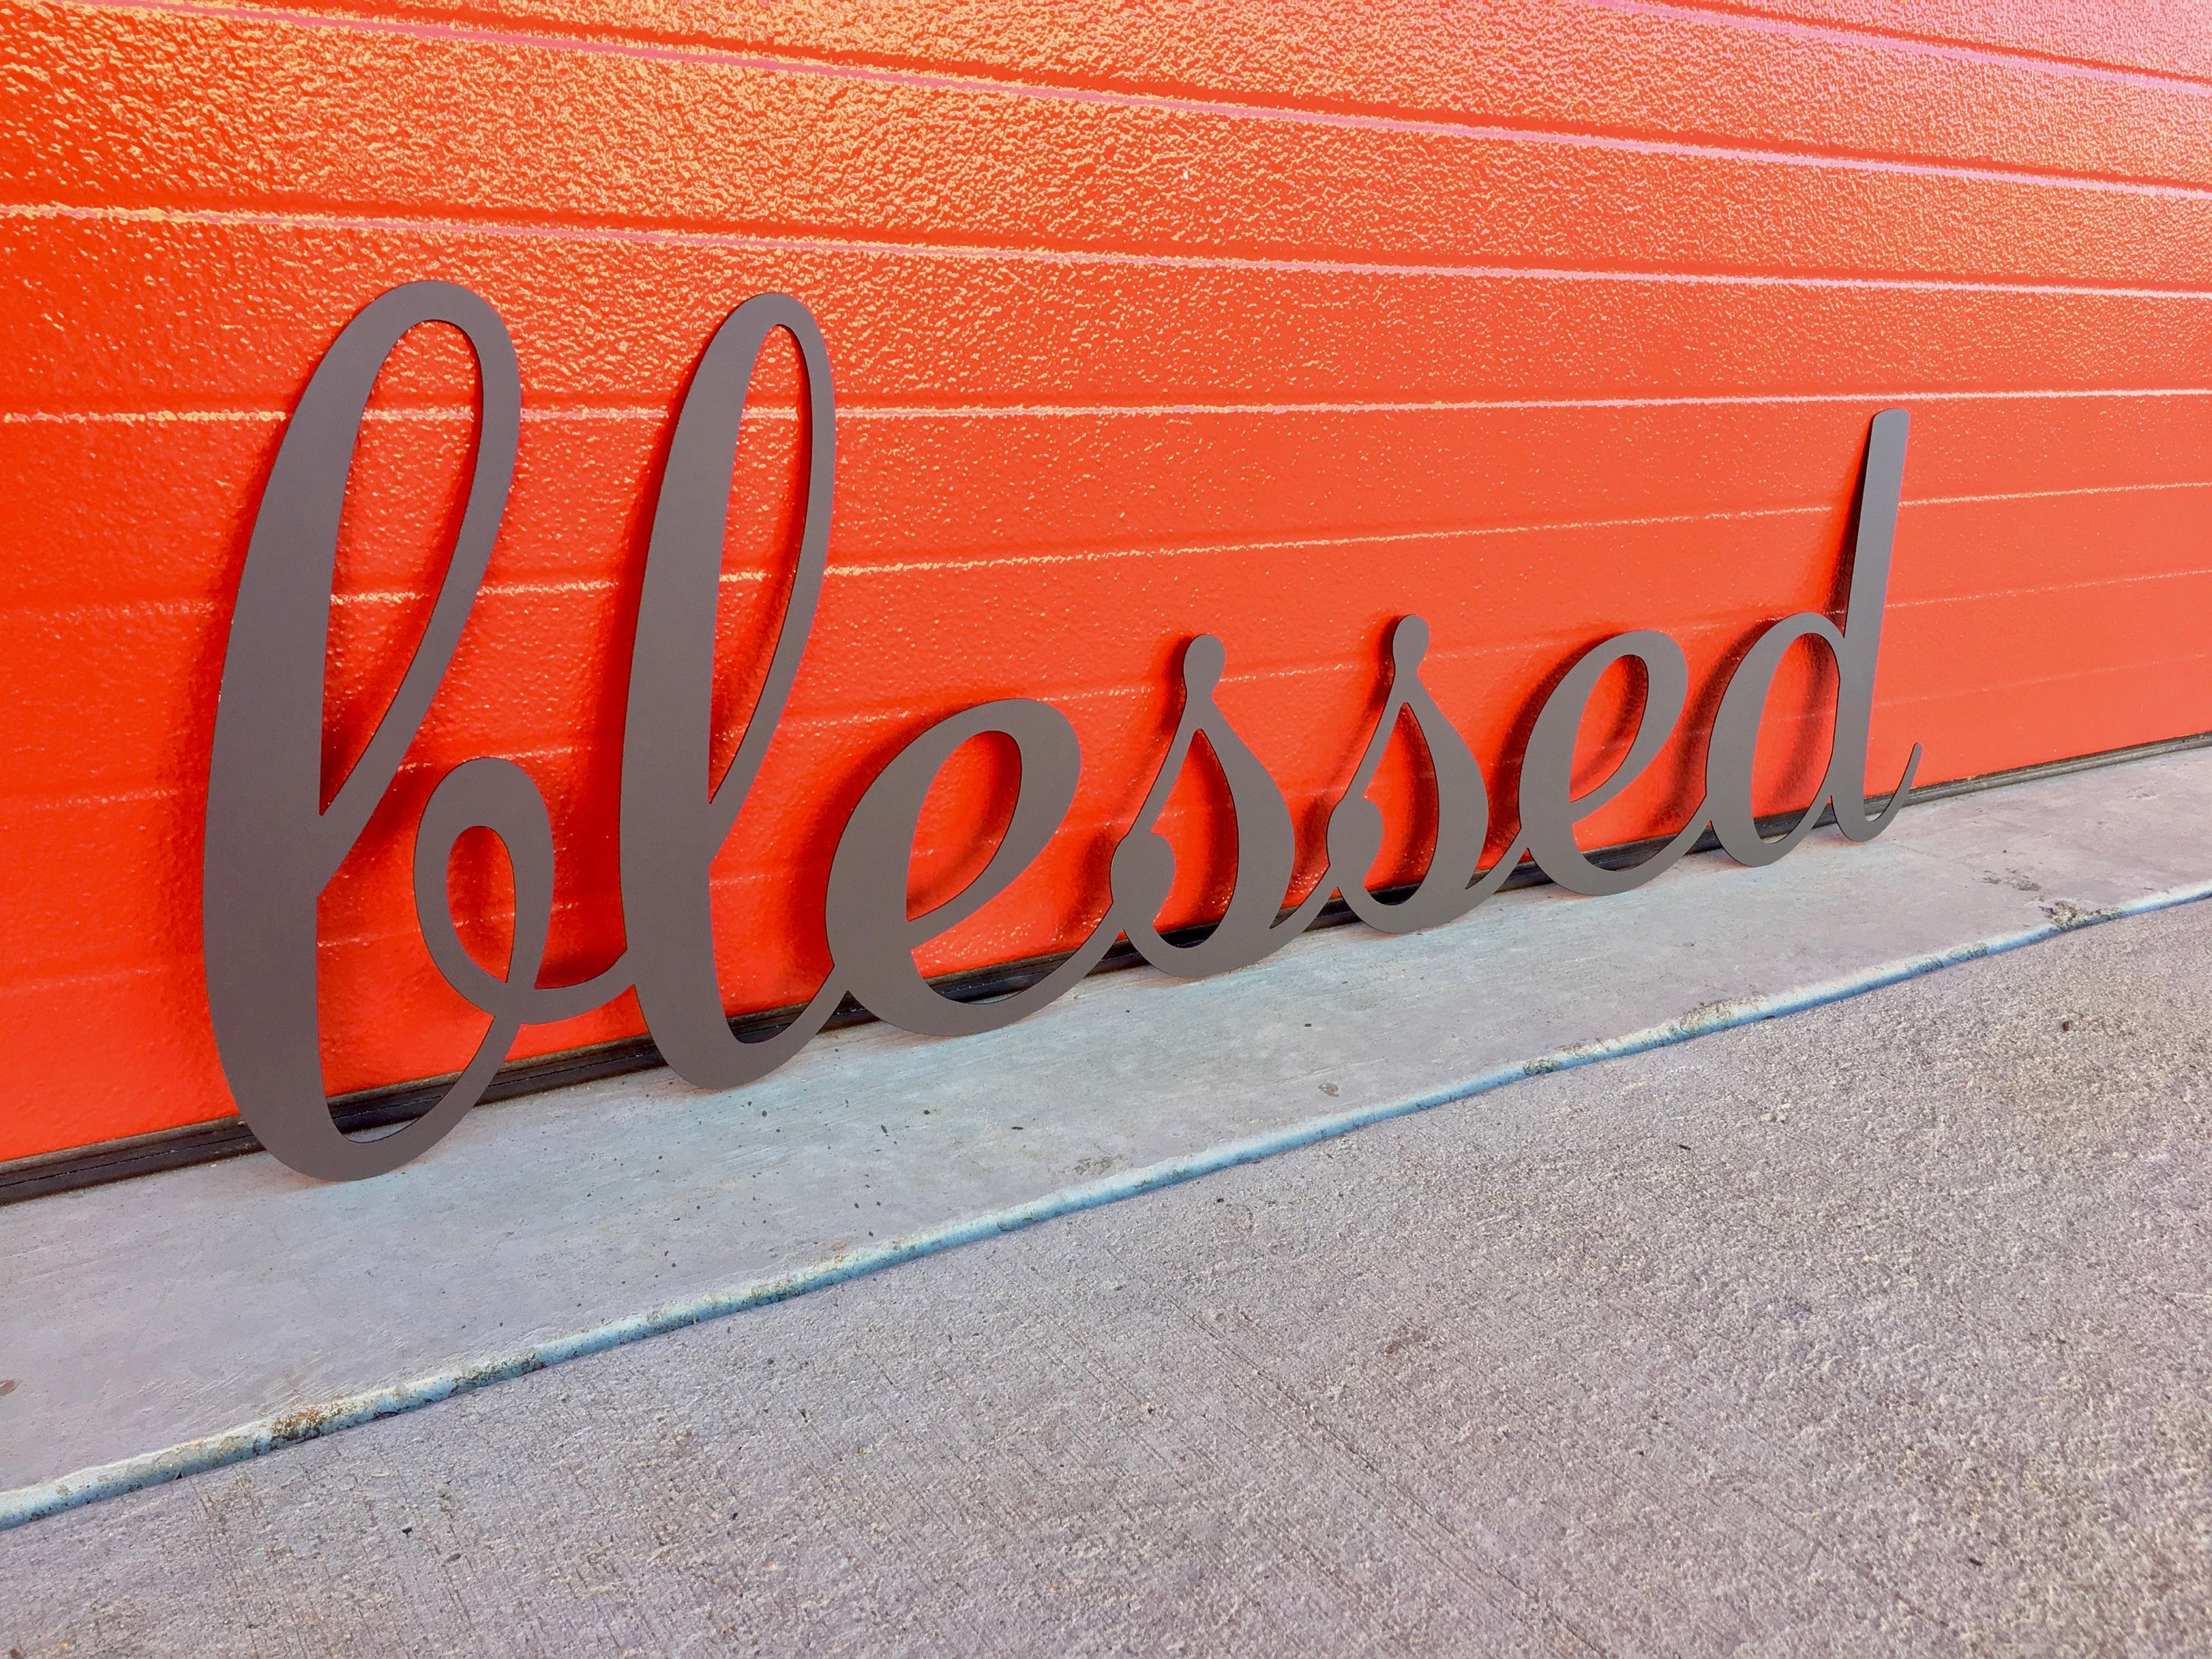 Blessed   Metal Lettering   Steel Home Decor   Blessed   Wall Art   Cursive   Script   Scroll   Christmas Gift   Family   Kitchen   #4401 Regarding Blessed Steel Wall Decor (View 10 of 30)